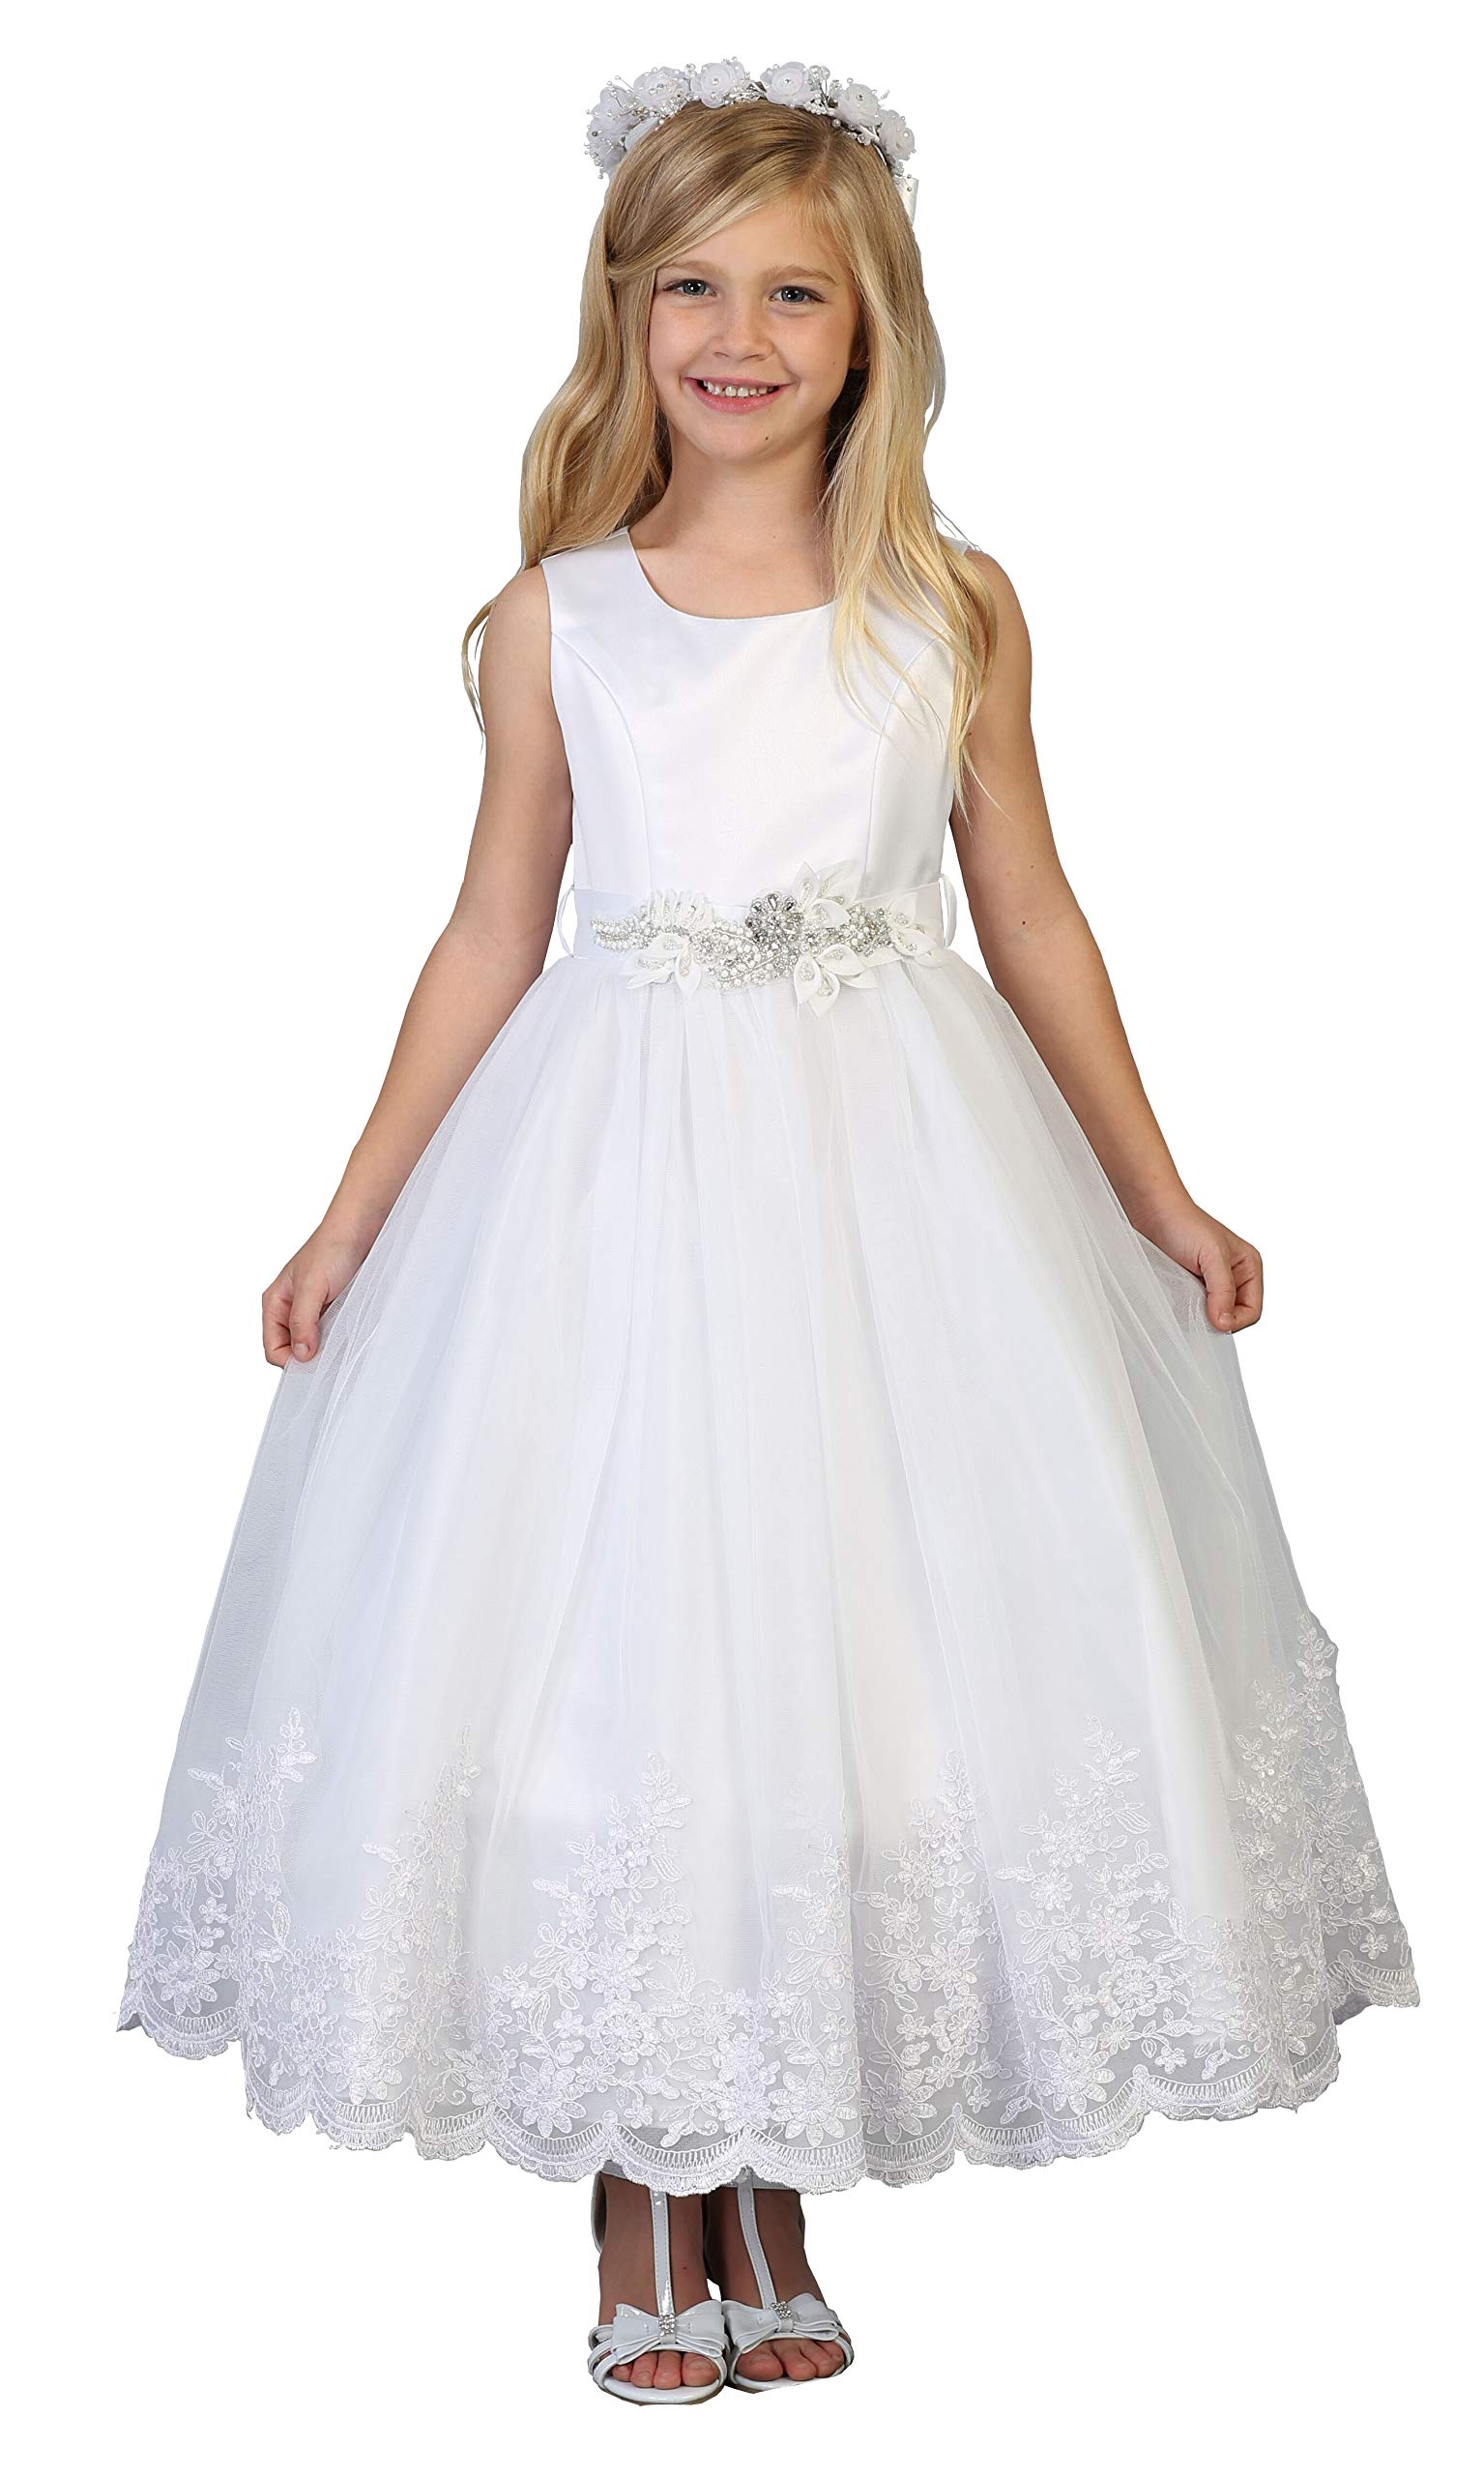 Big Girls' White First Communion Flower Girl Pageant Dress 3730 Size 18